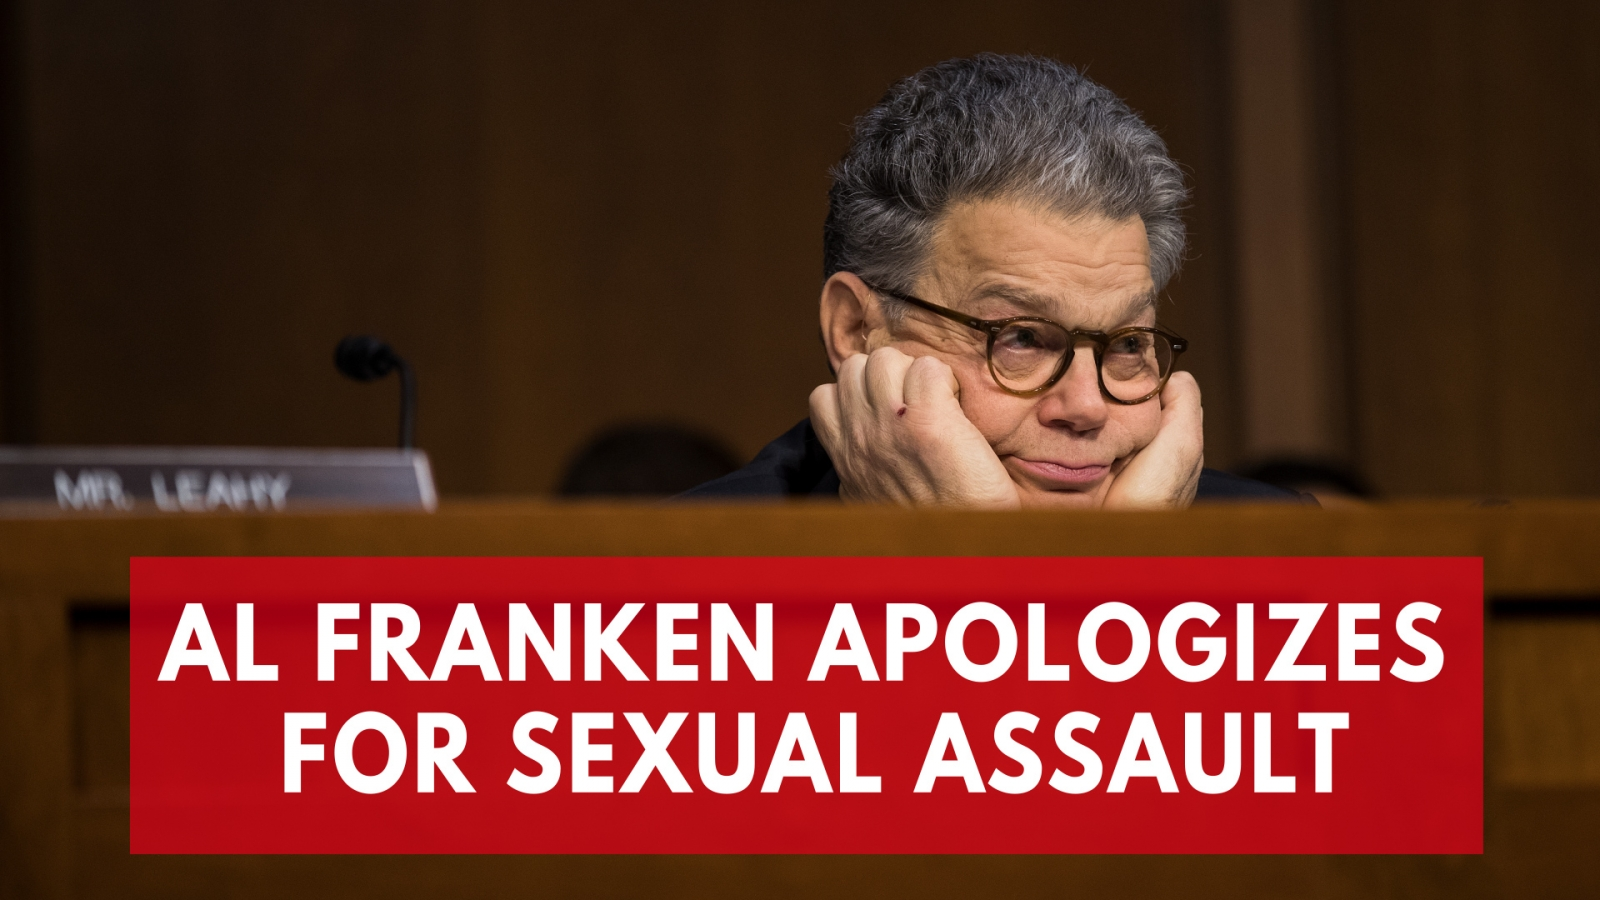 Senator Al Franken apologizes following sexual assault accusations from Los Angeles radio host Leeann Tweeden